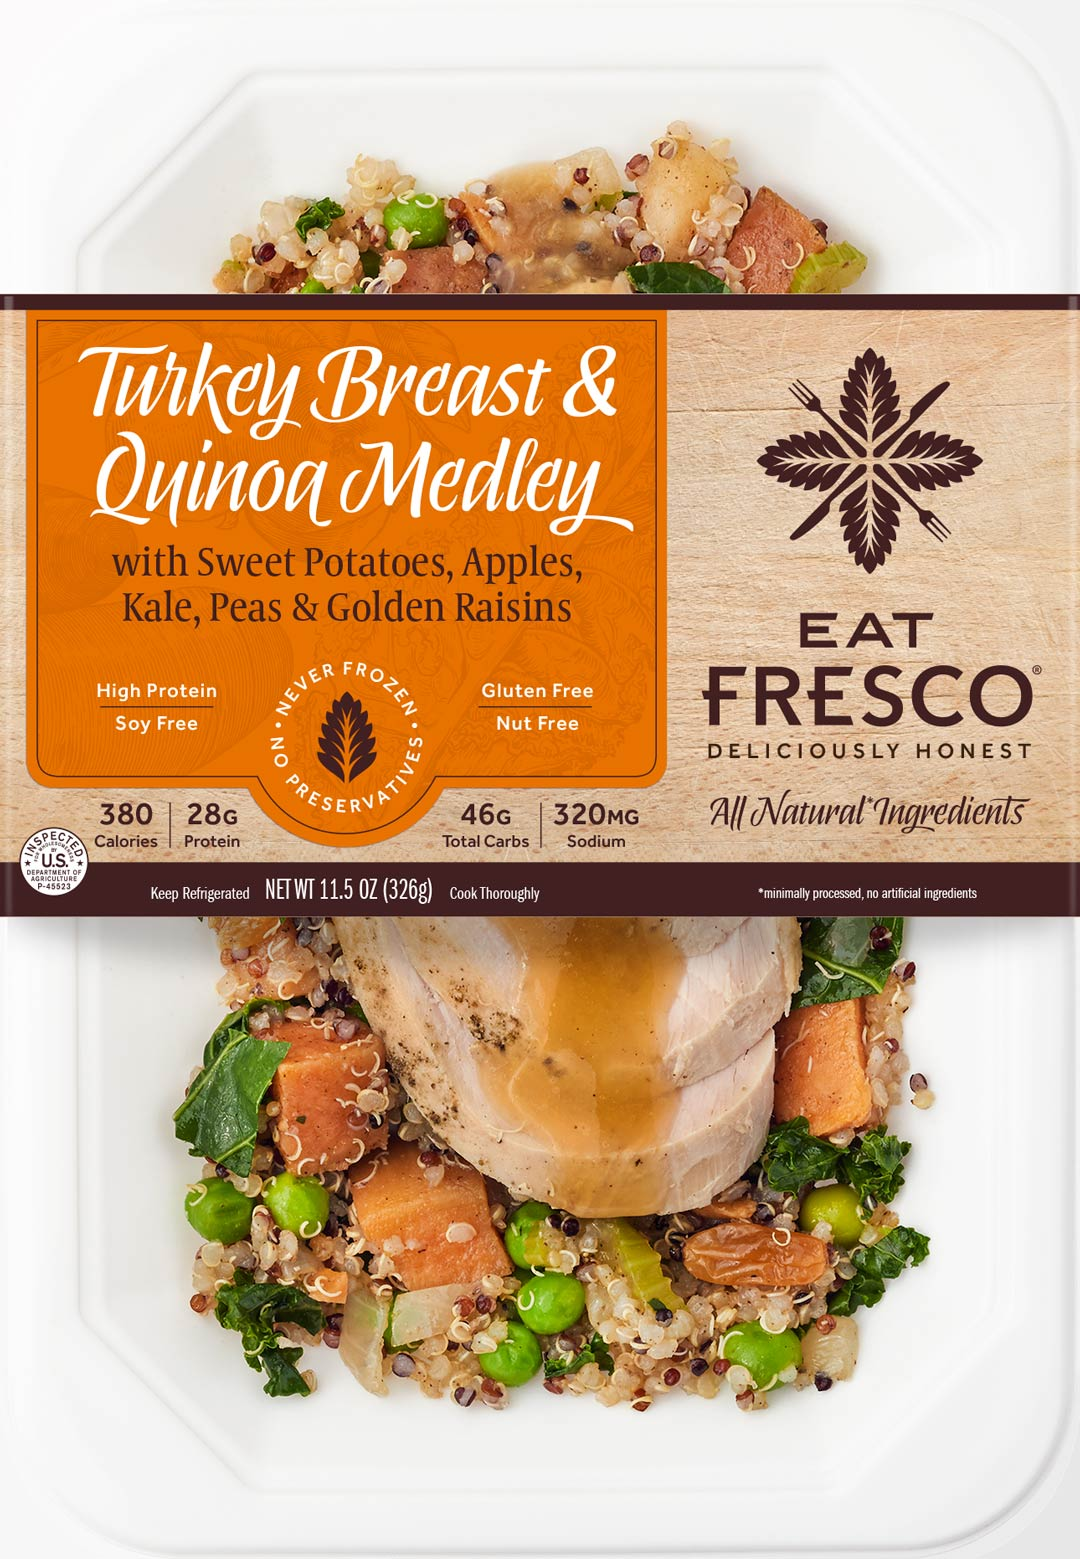 Eat Fresco - Entree - Dinner - Turkey Breast & Quinoa Medley